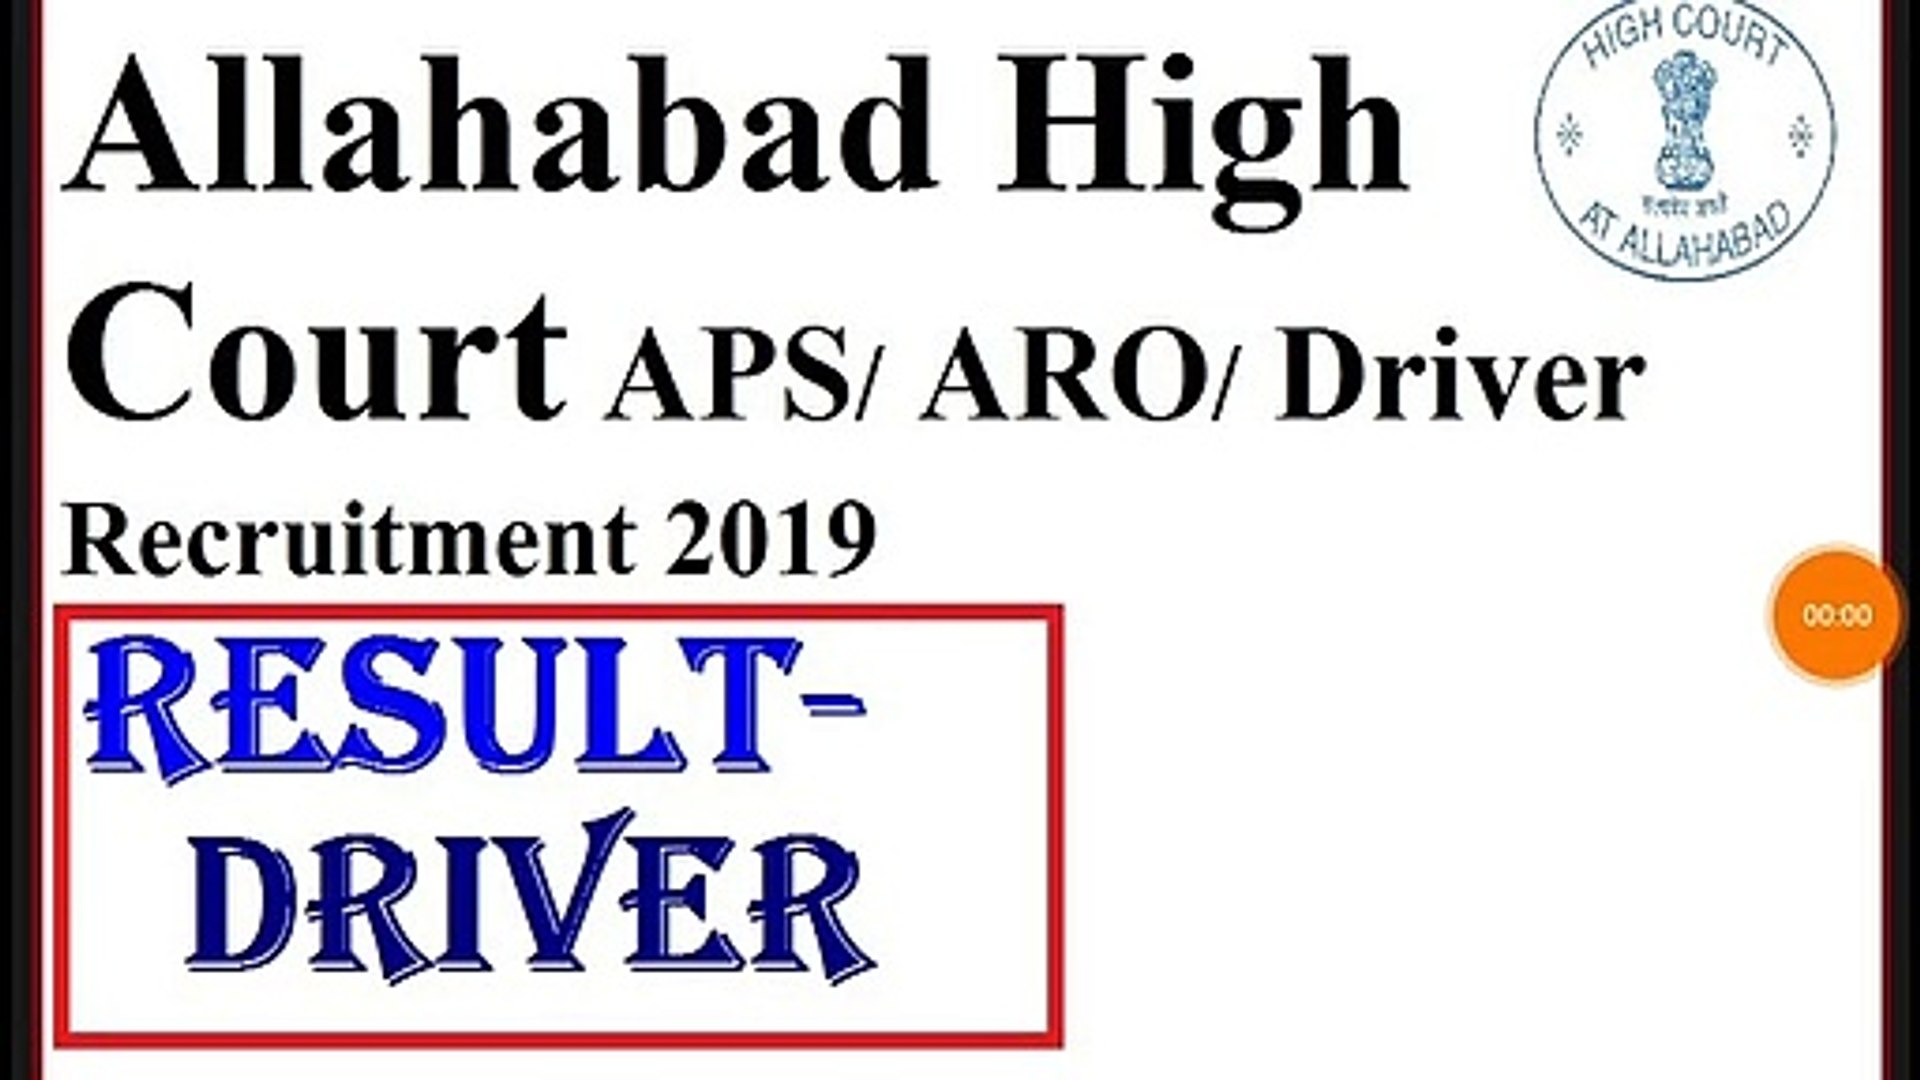 Allahabad High Court APS ARO Driver Recruitment 2019 Result-DRIVER